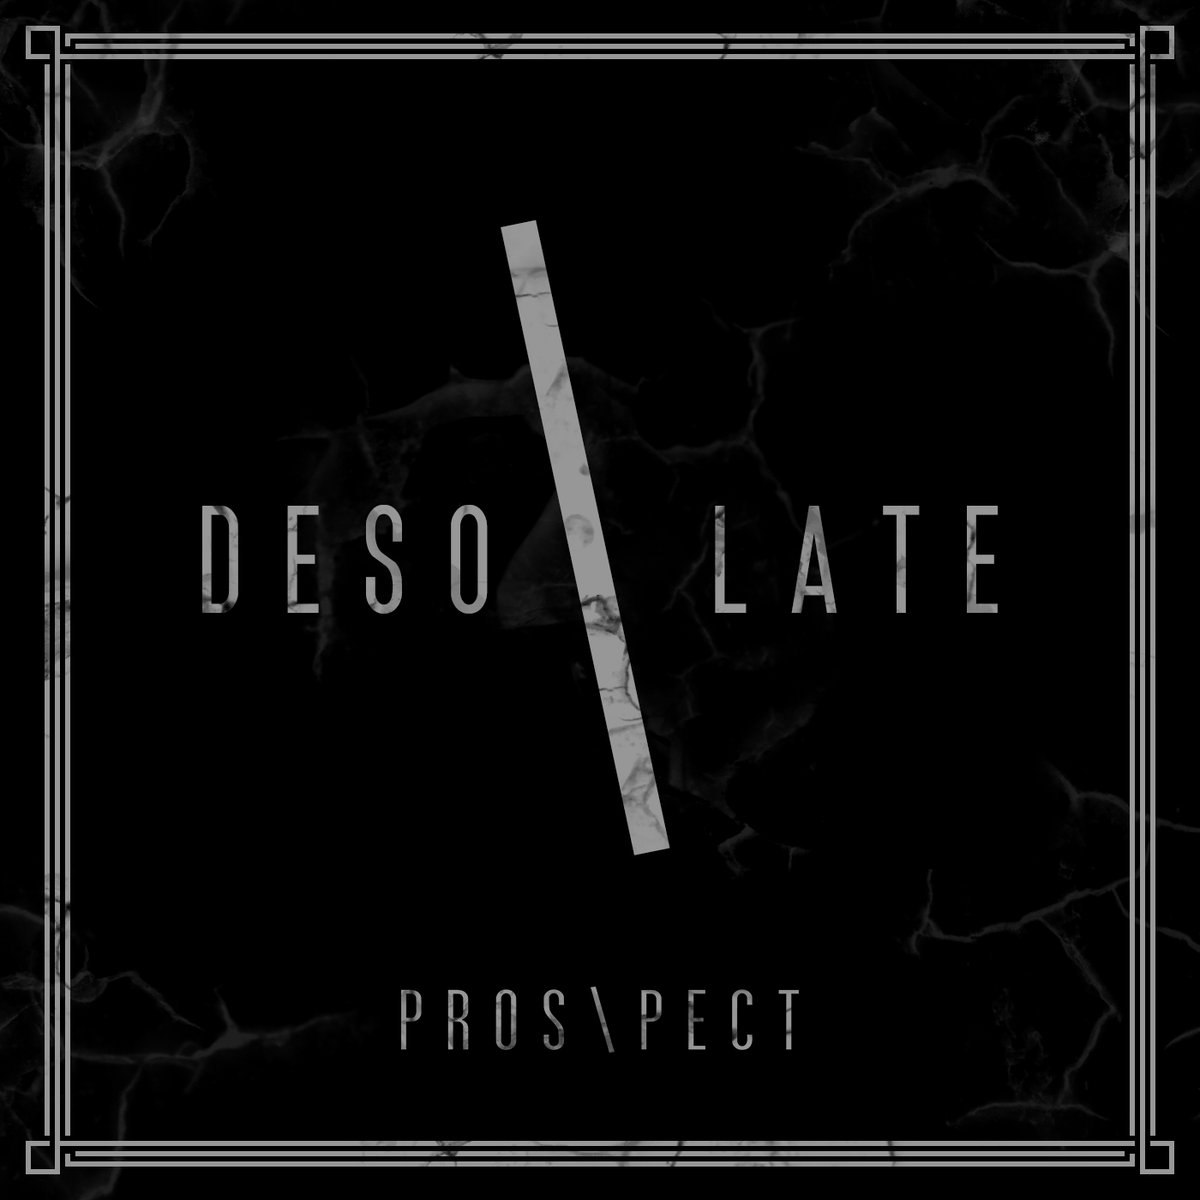 PROS\PECT - Desolate [single] (2016)